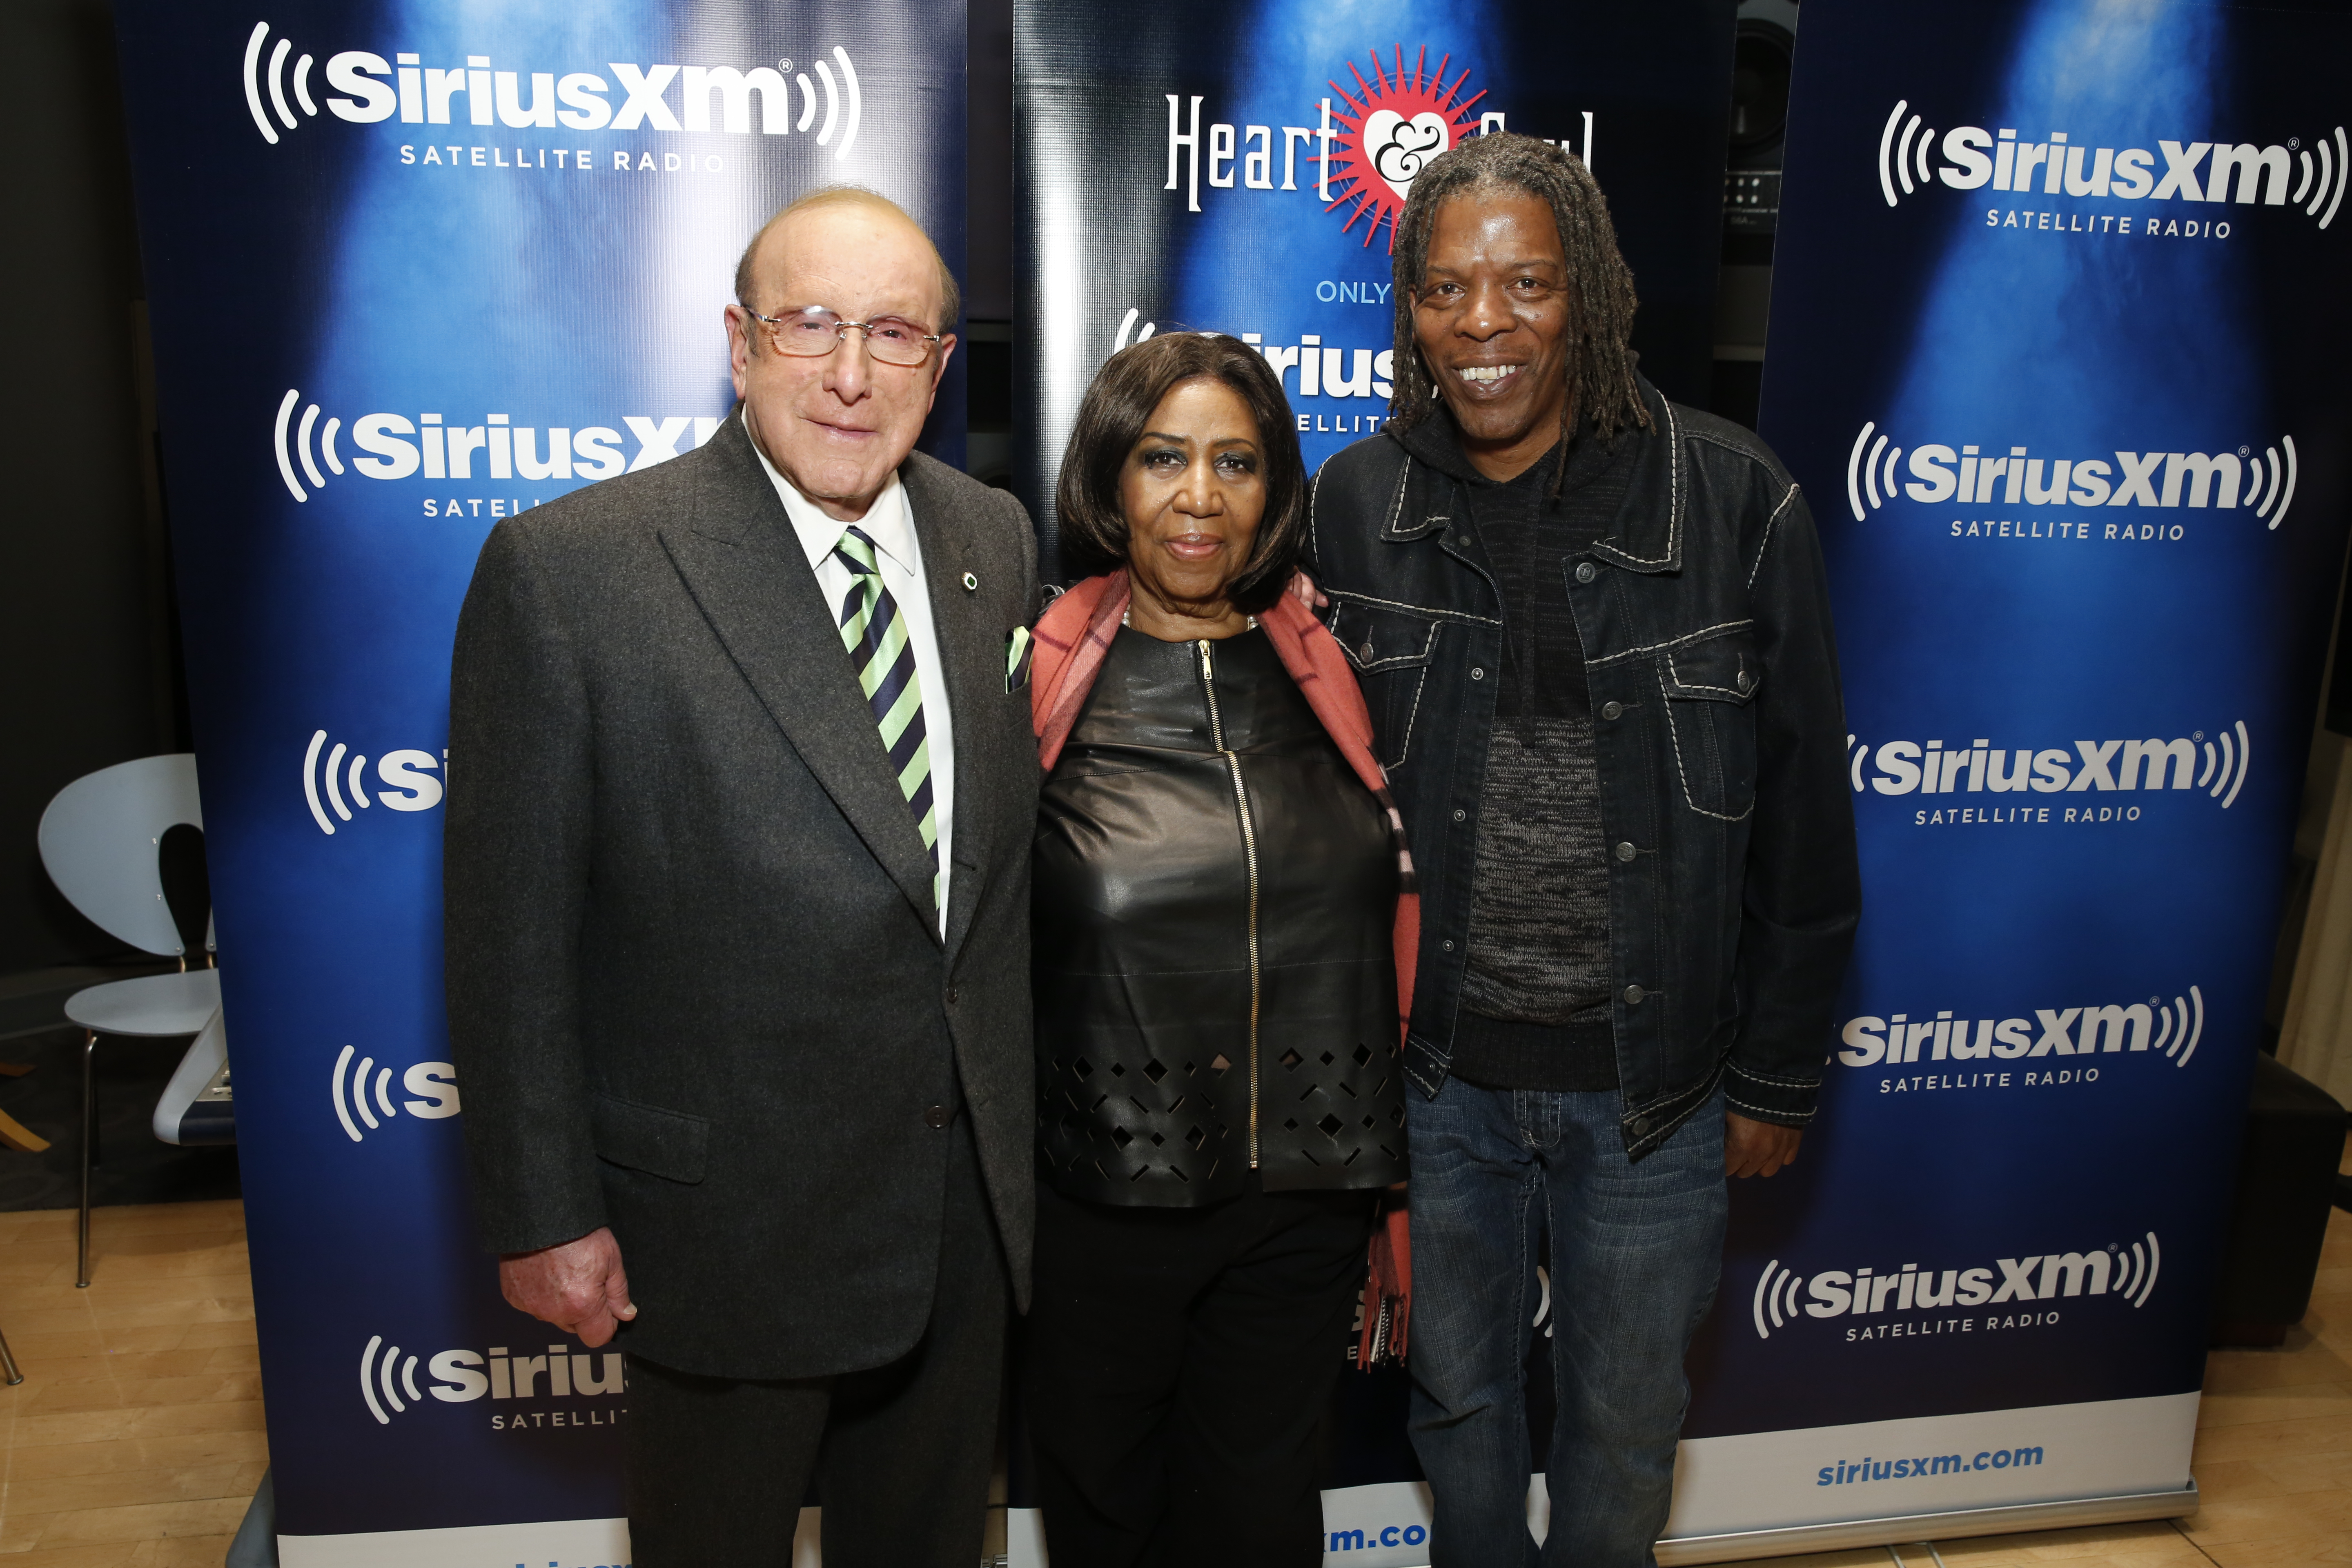 Mark with Aretha Franklin and Clive Davis